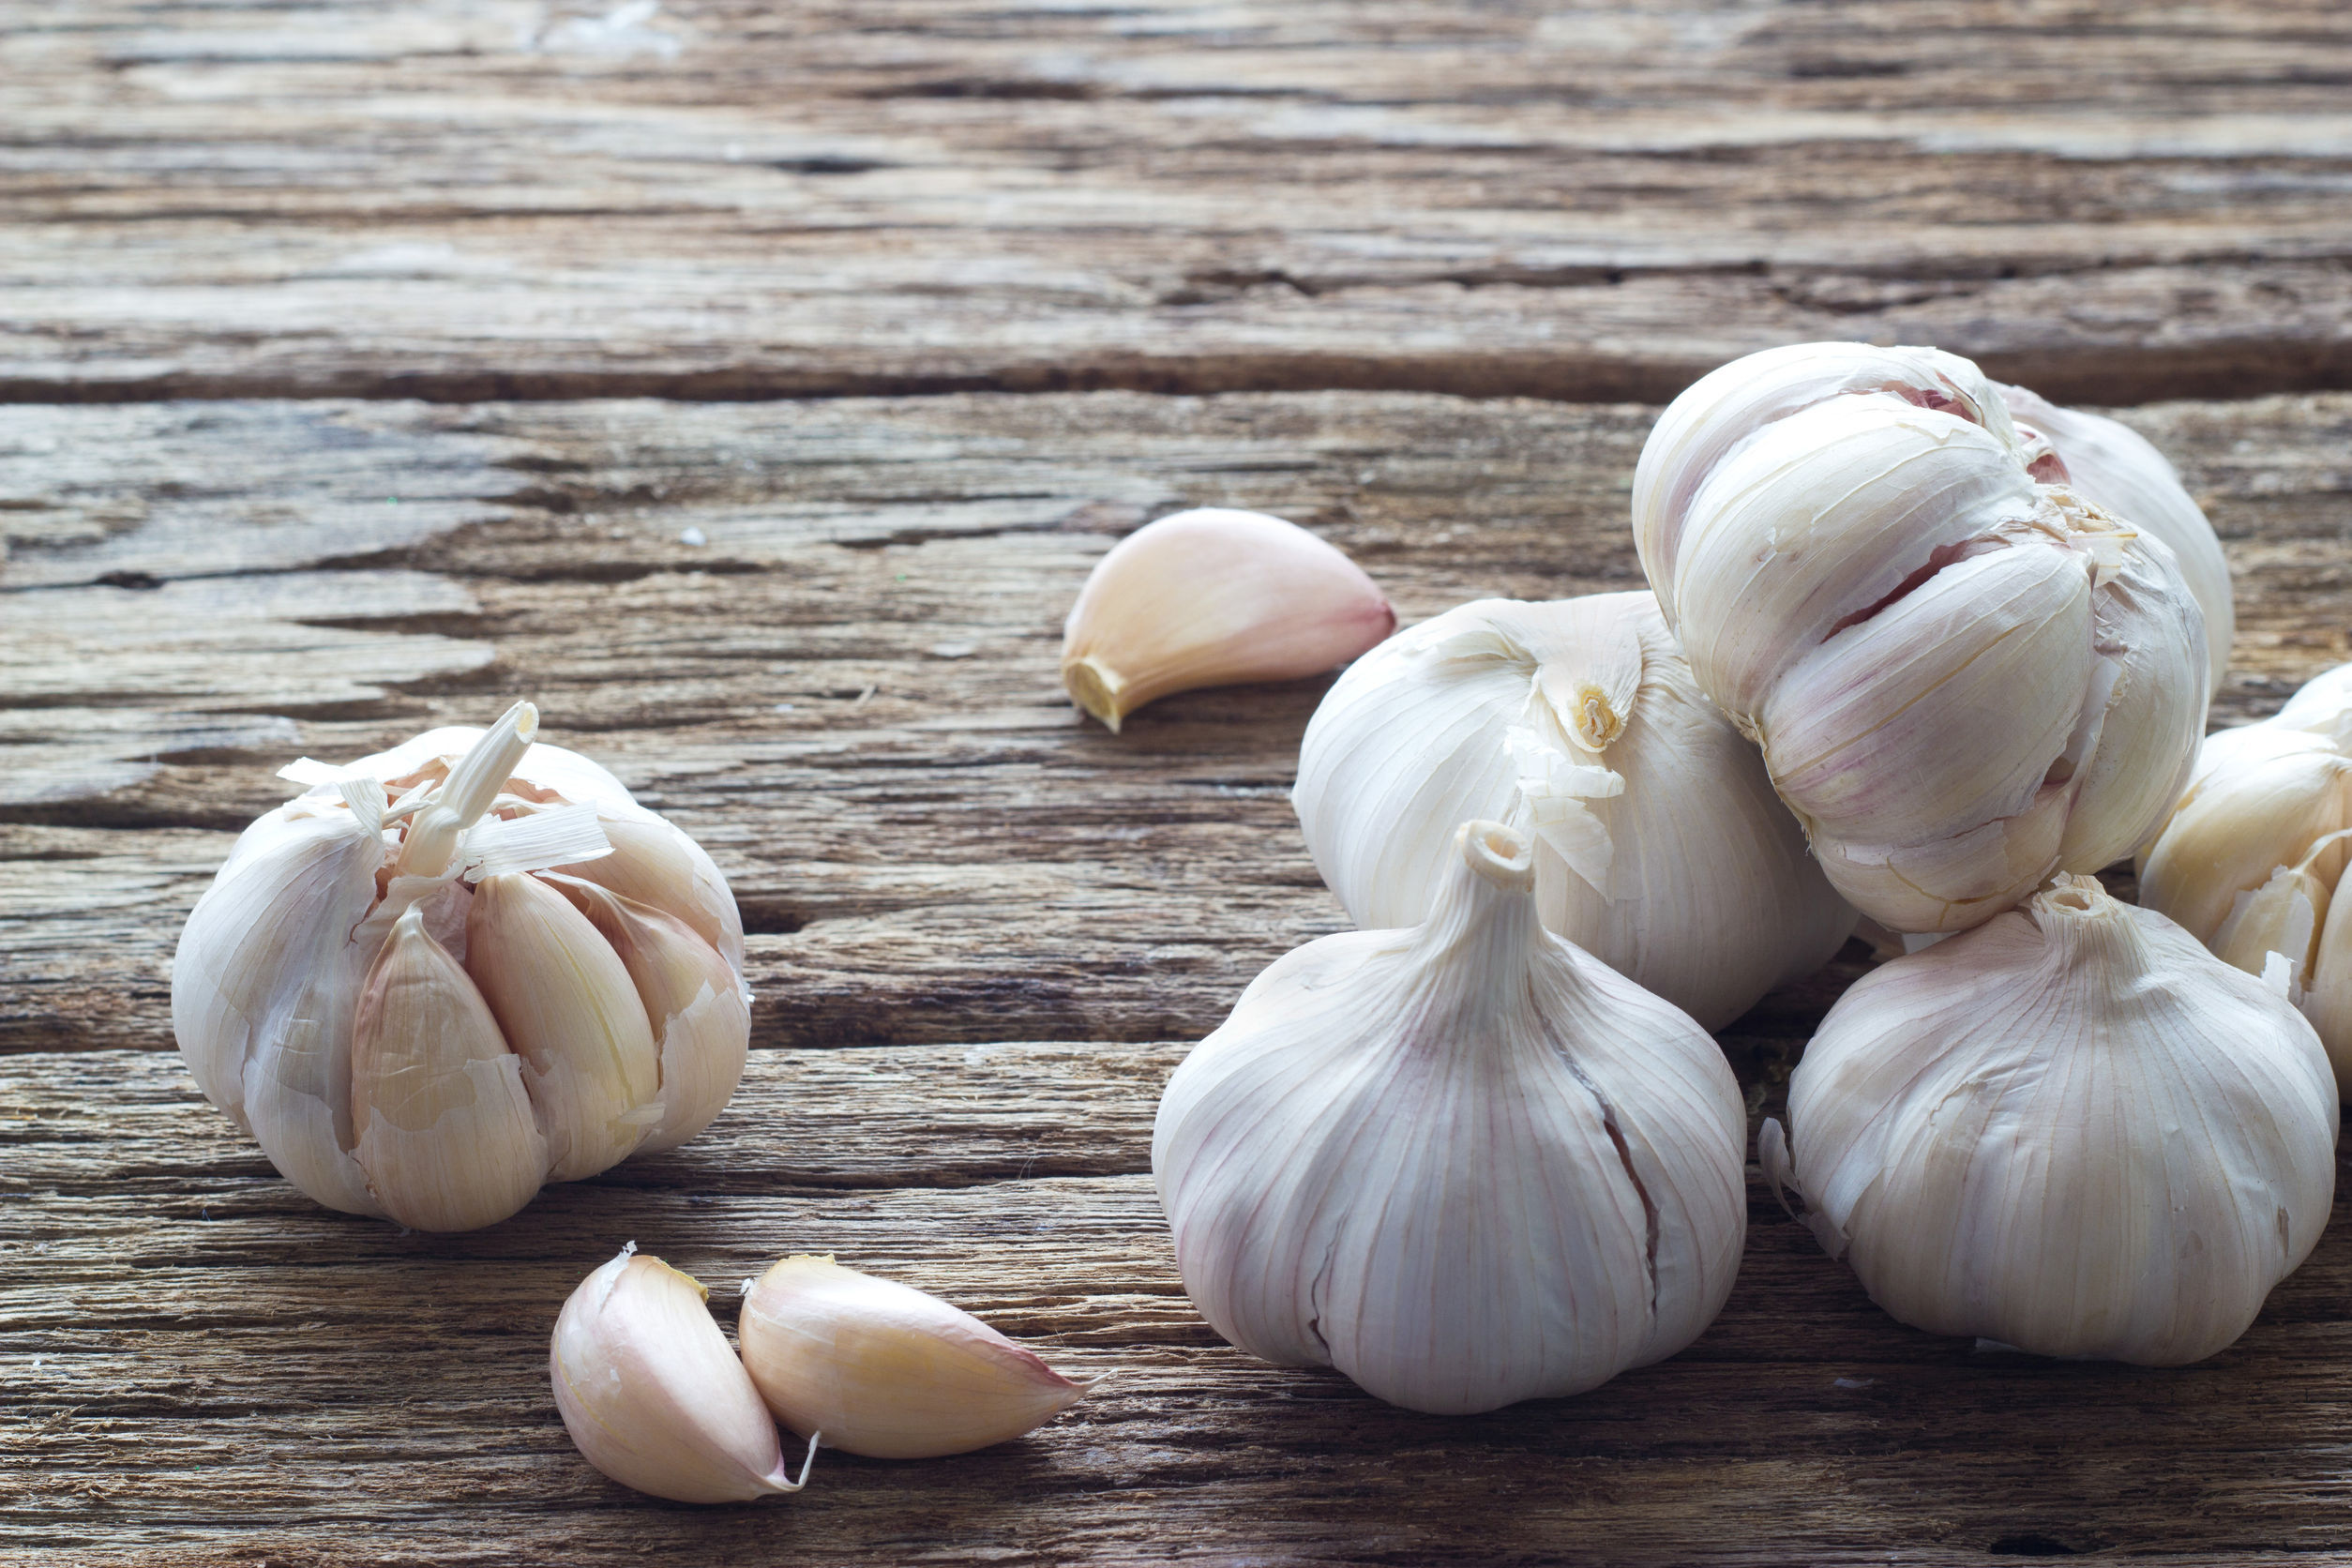 41401711 - garlic on the wooden background